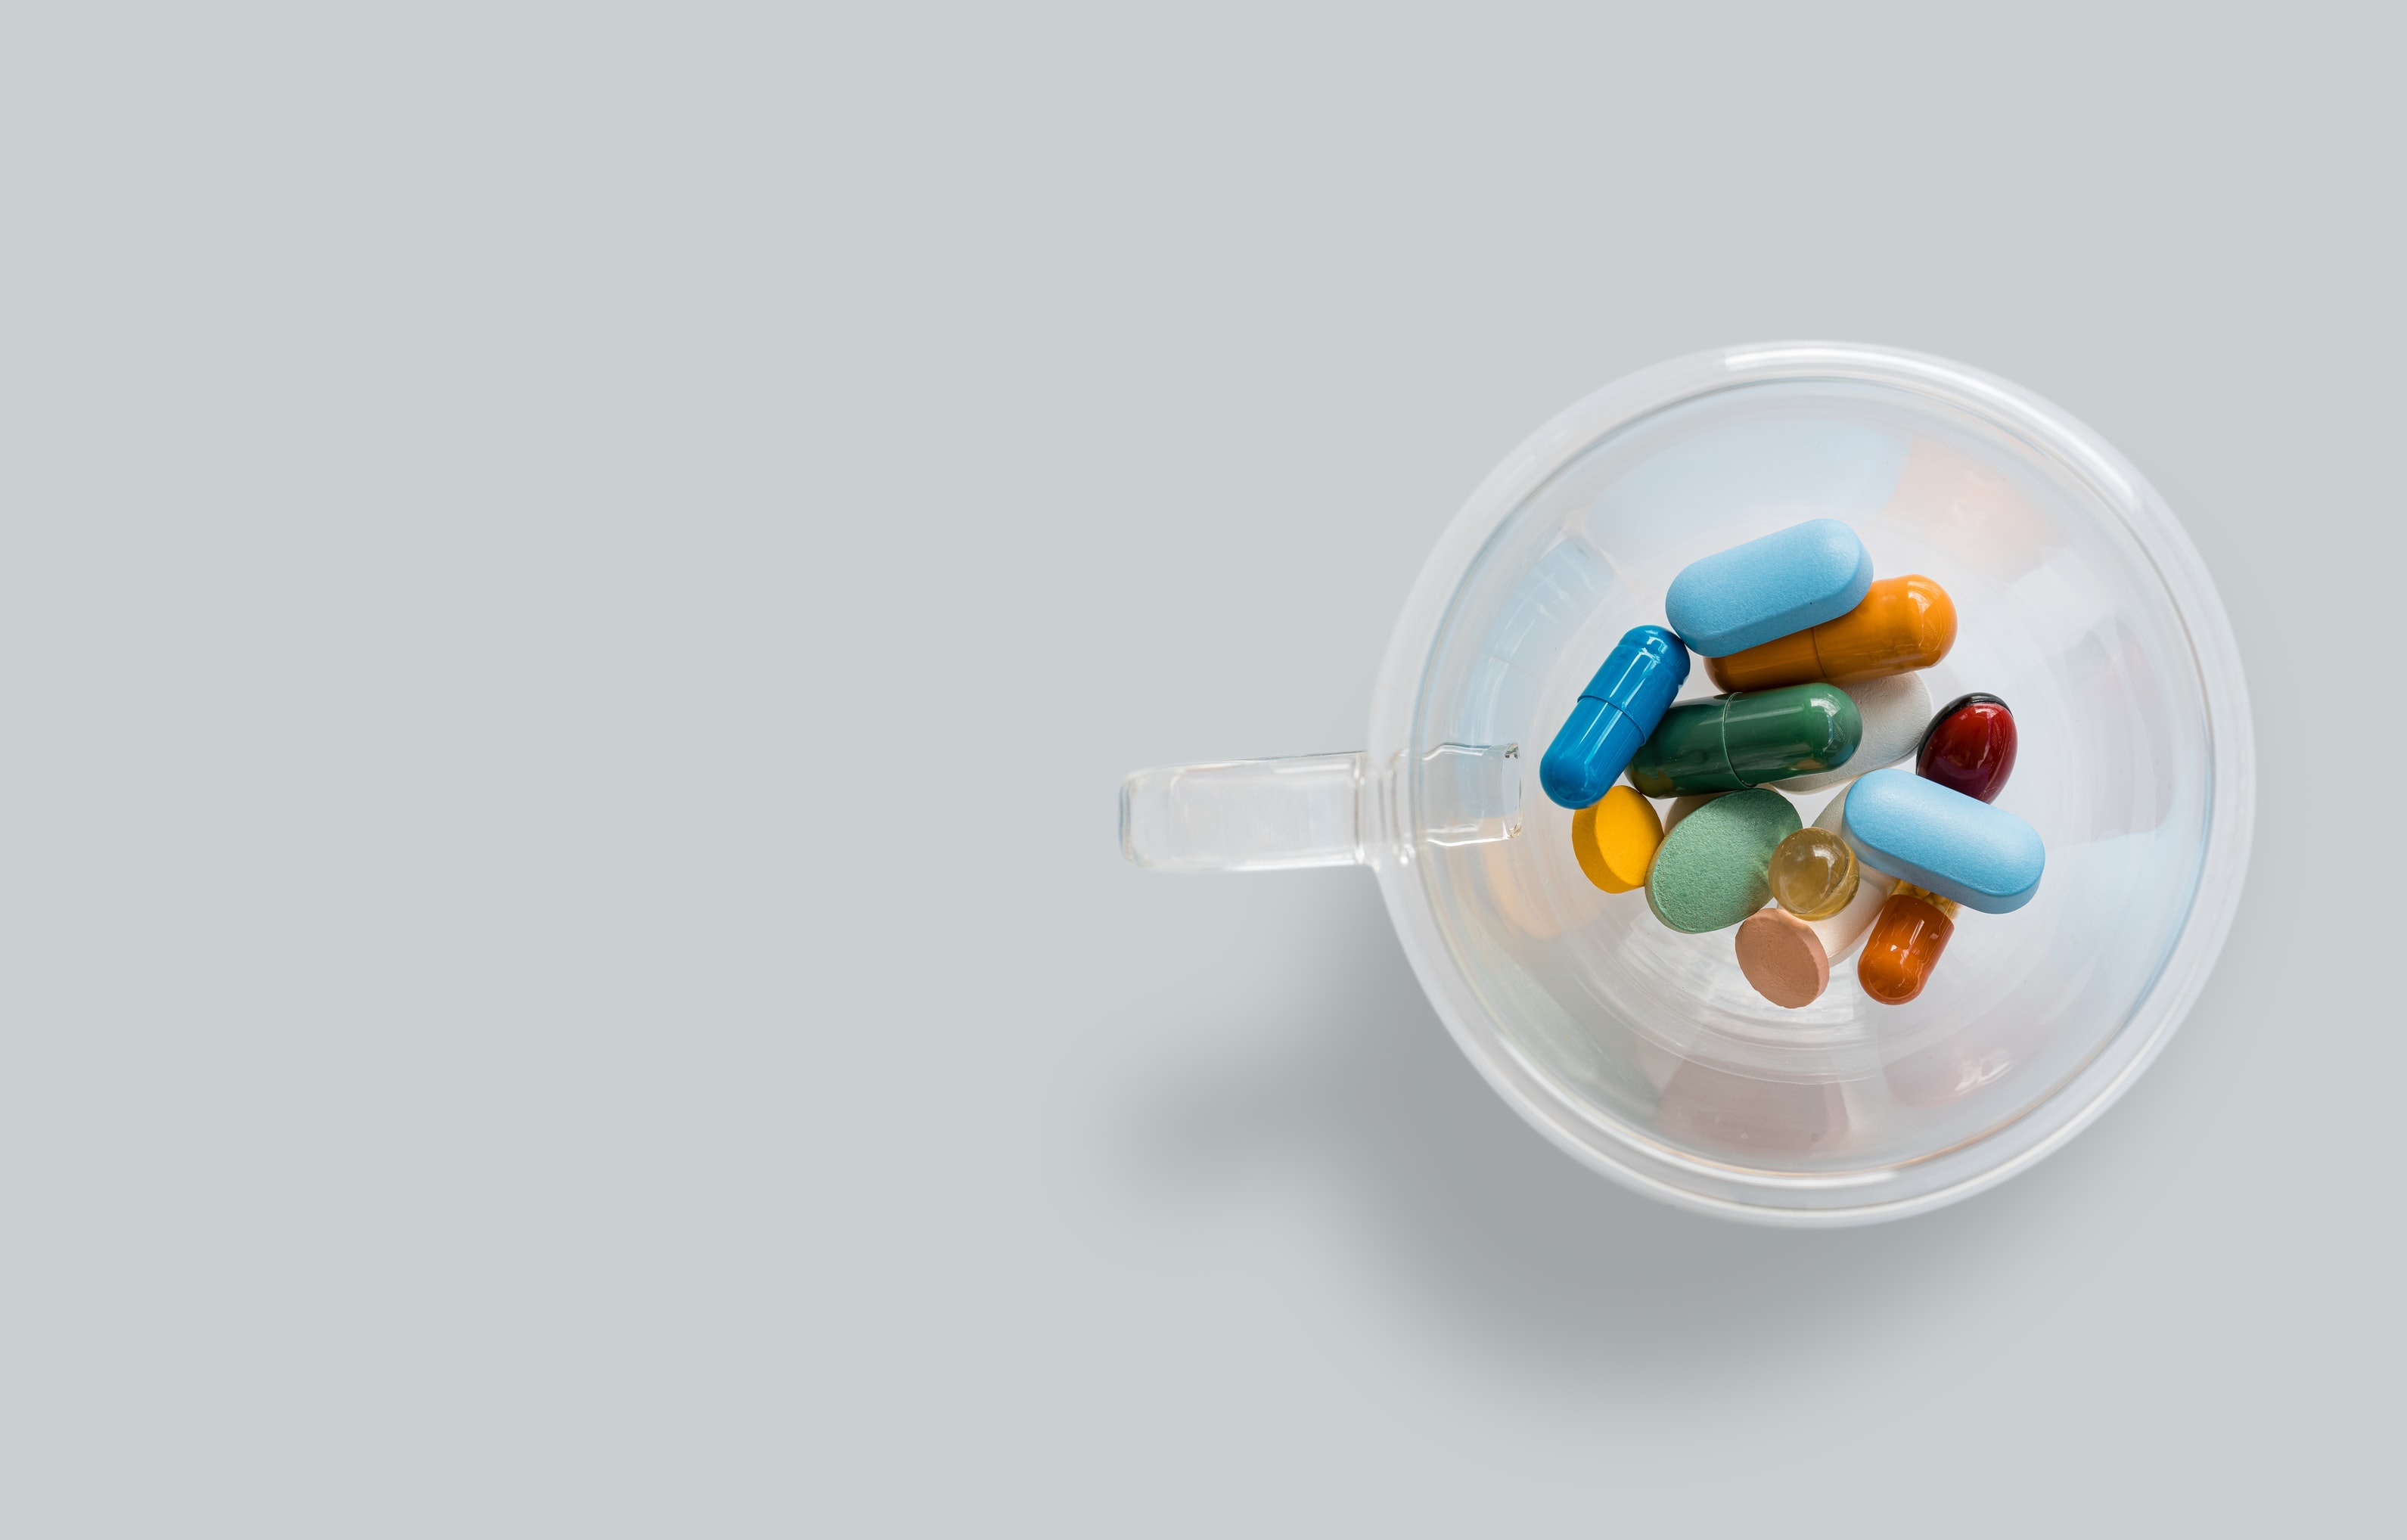 assorted physician-grade supplements in a plastic cup